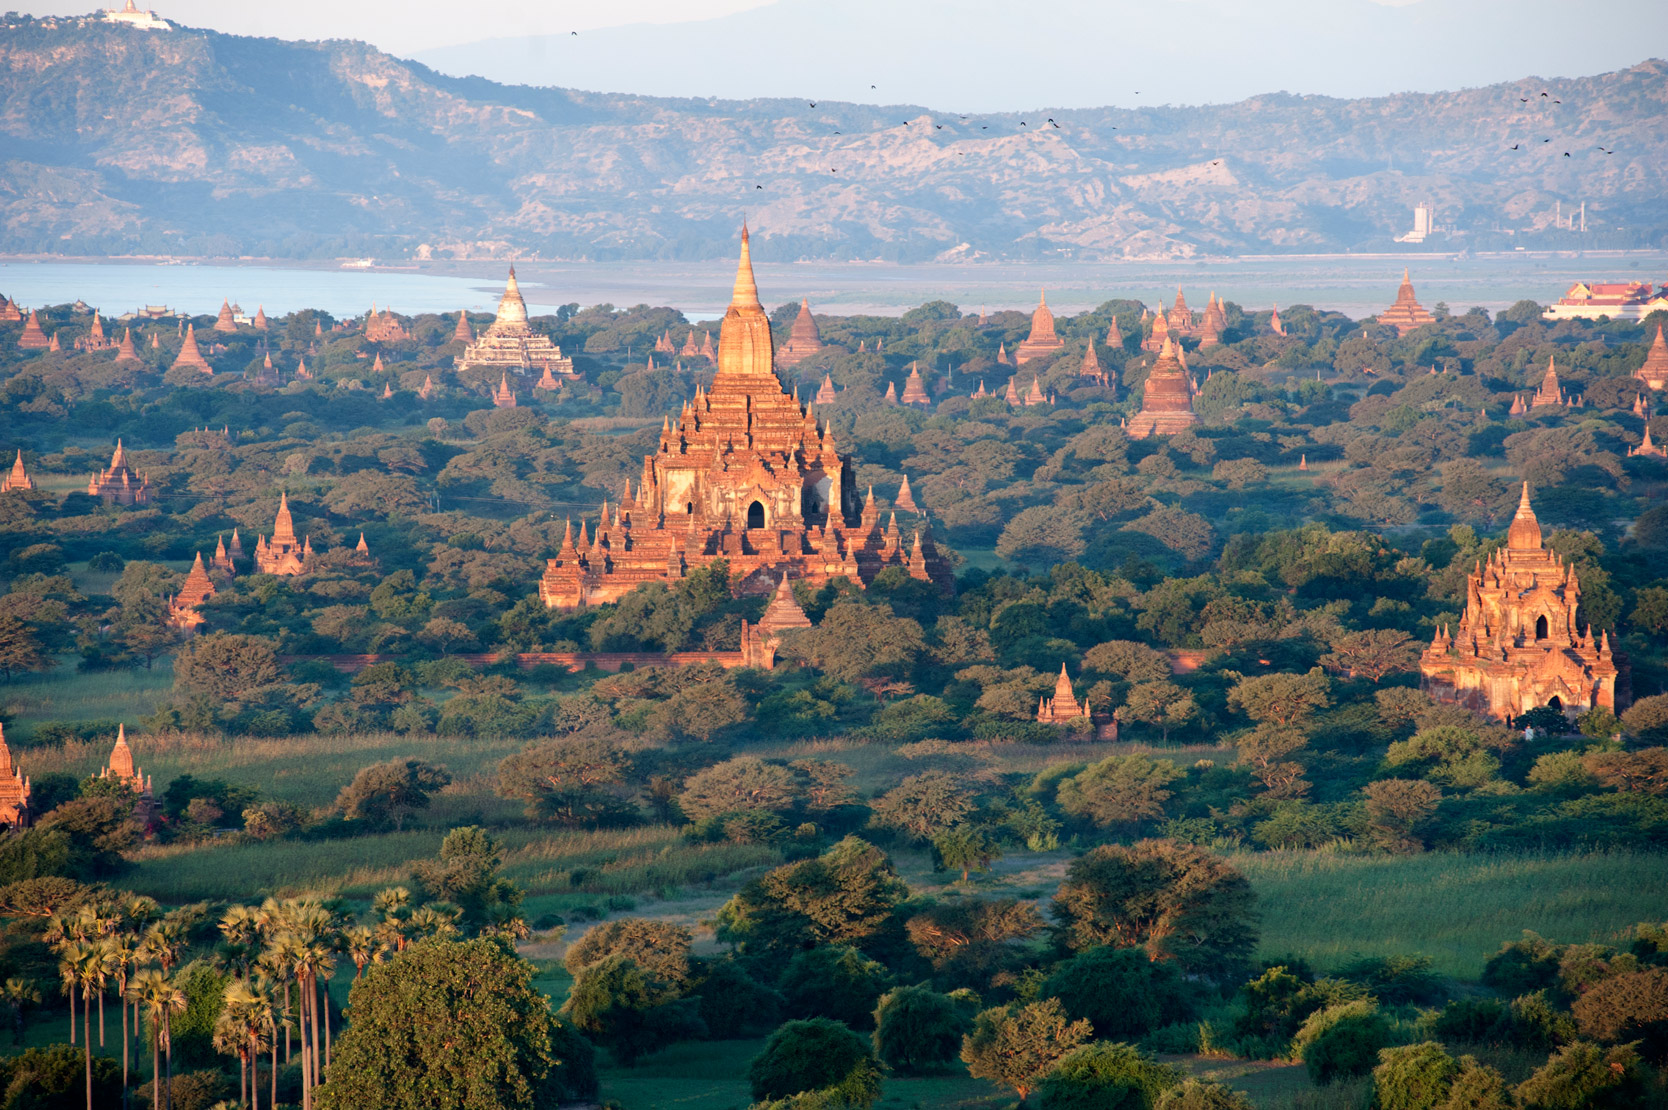 Htilominlo Buddhist temple and others, illuminated by the early morning sunrise over Bagan, founded in 9th century, Mandalay Division.